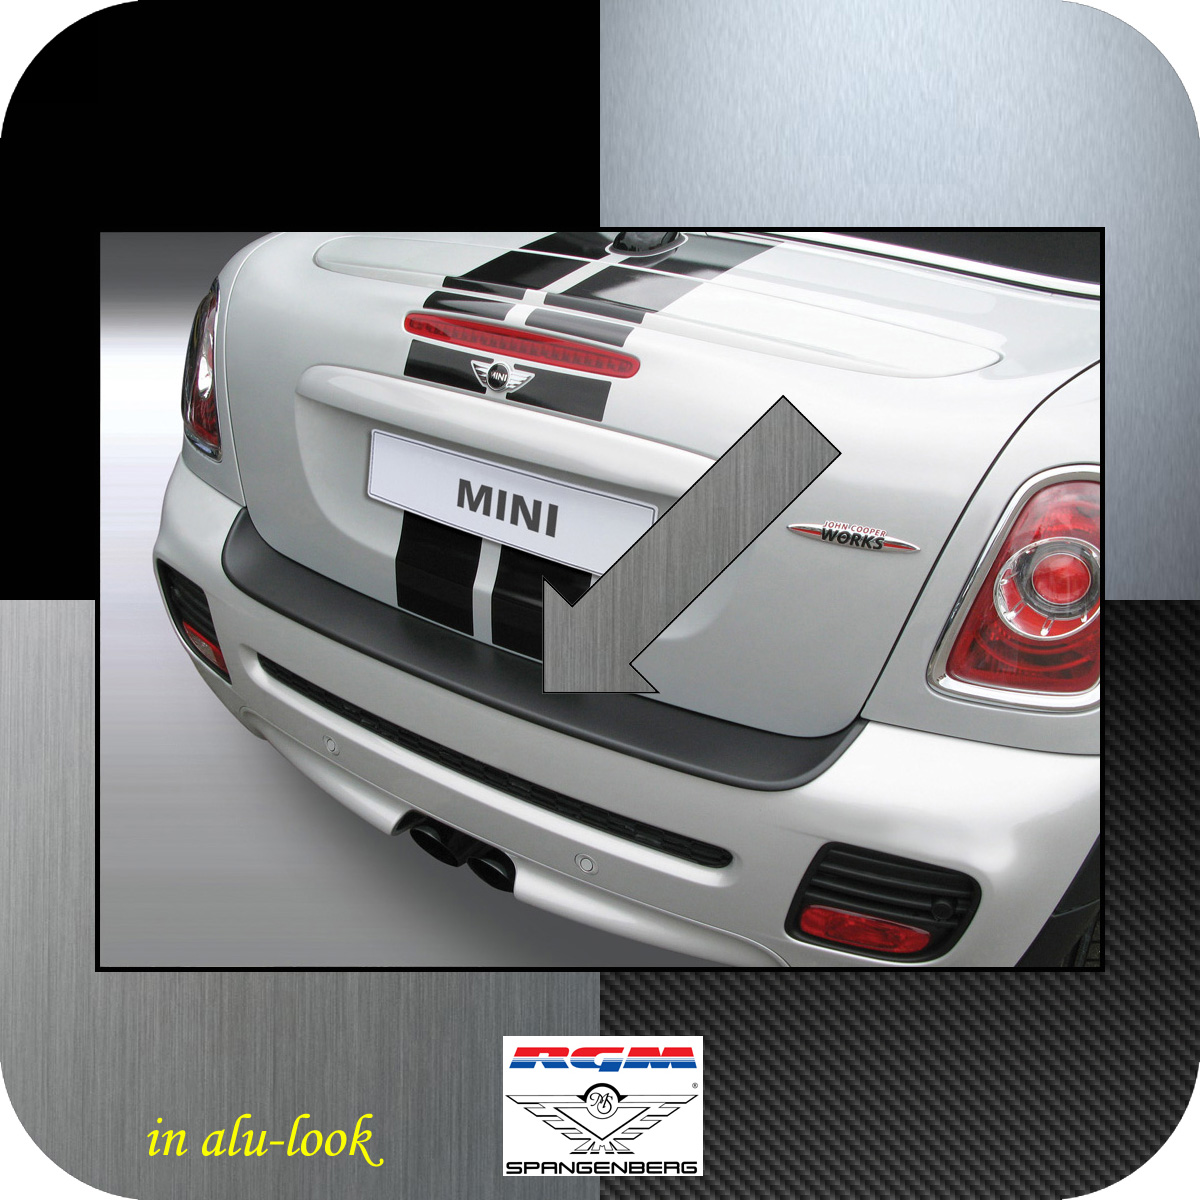 Ladekantenschutz Alu-Look Mini BMW Cabrio One Cooper R57 2009-15 3504102